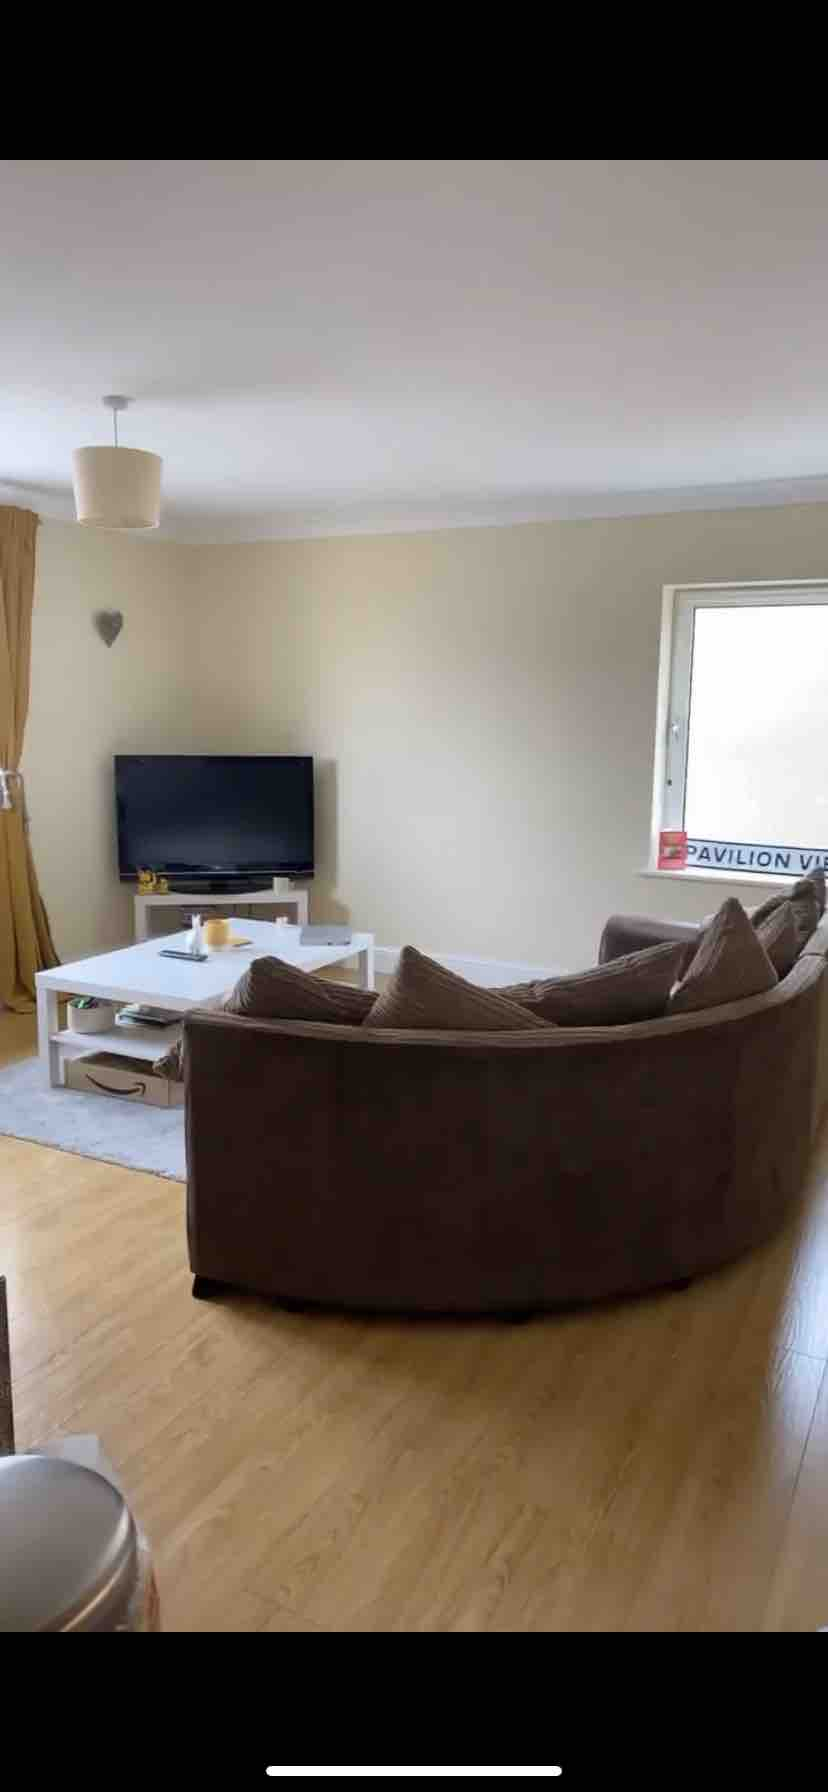 1 room in Thirsk, Thirsk, YO7 1GJ RoomsLocal image